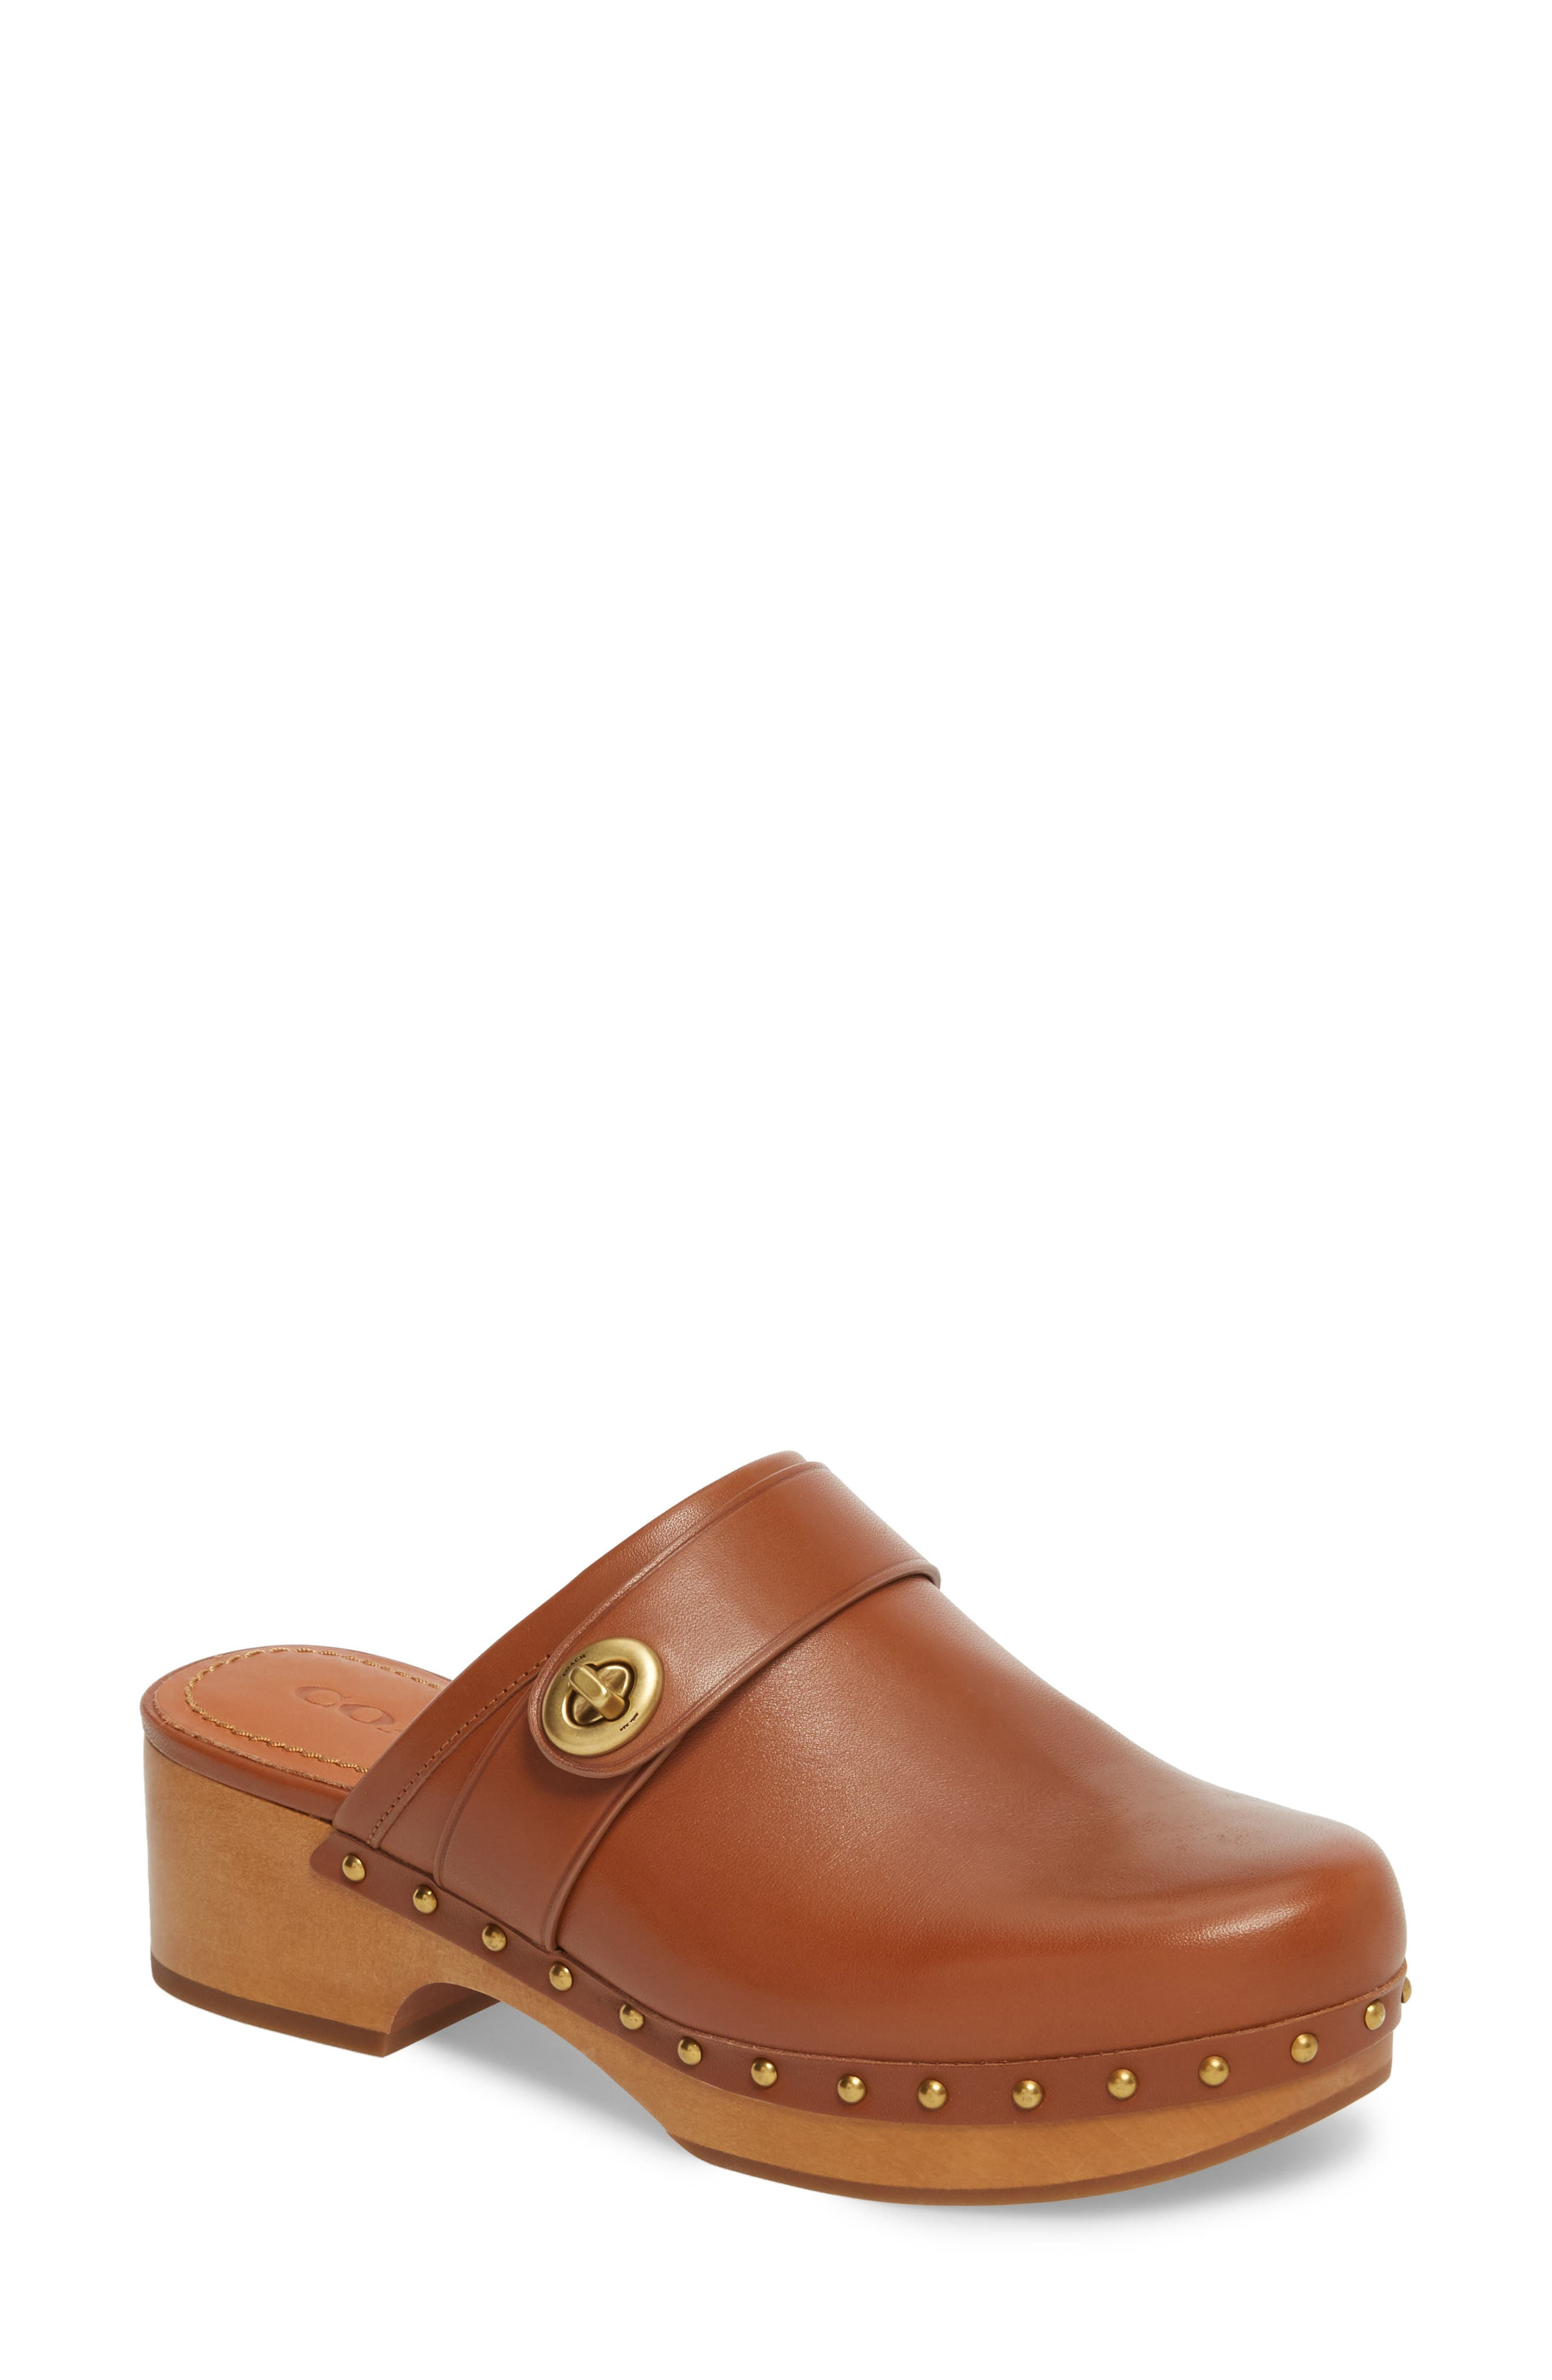 Turnlock Clog,                             Main thumbnail 1, color,                             Saddle Leather